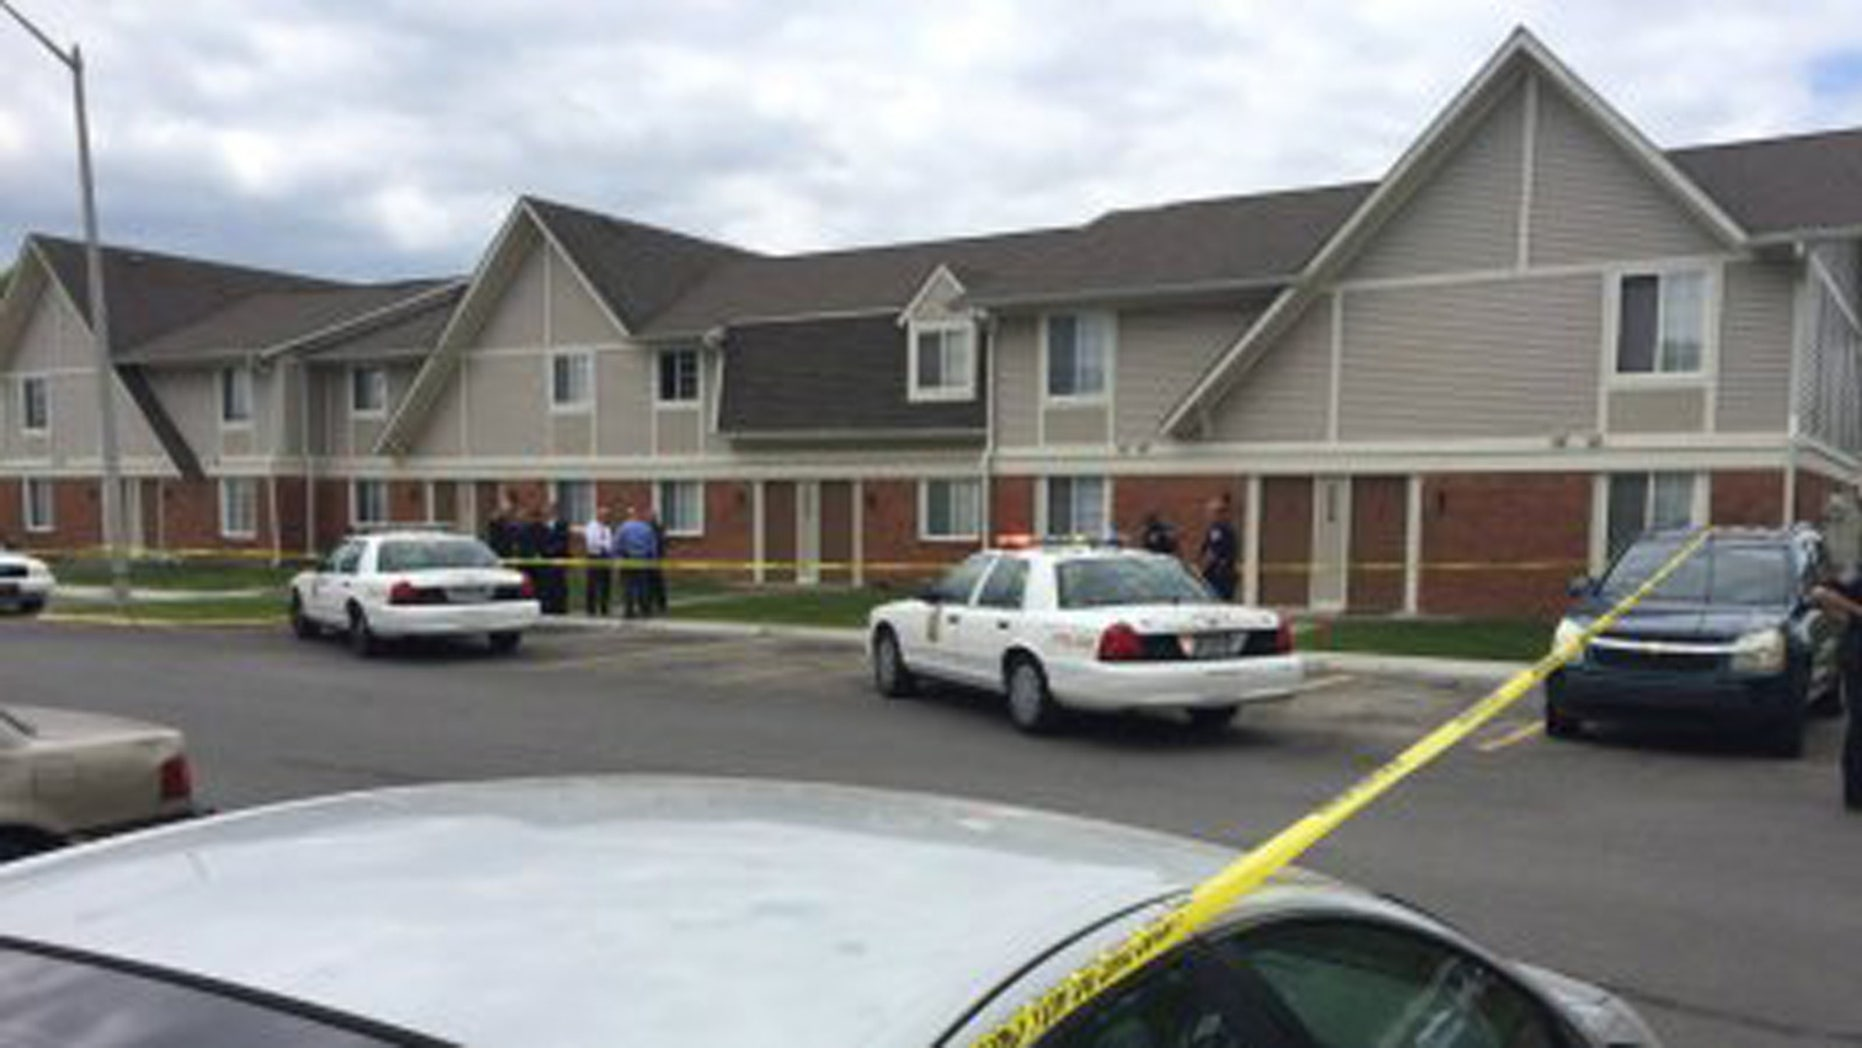 The scene of the shooting in Indianapolis.